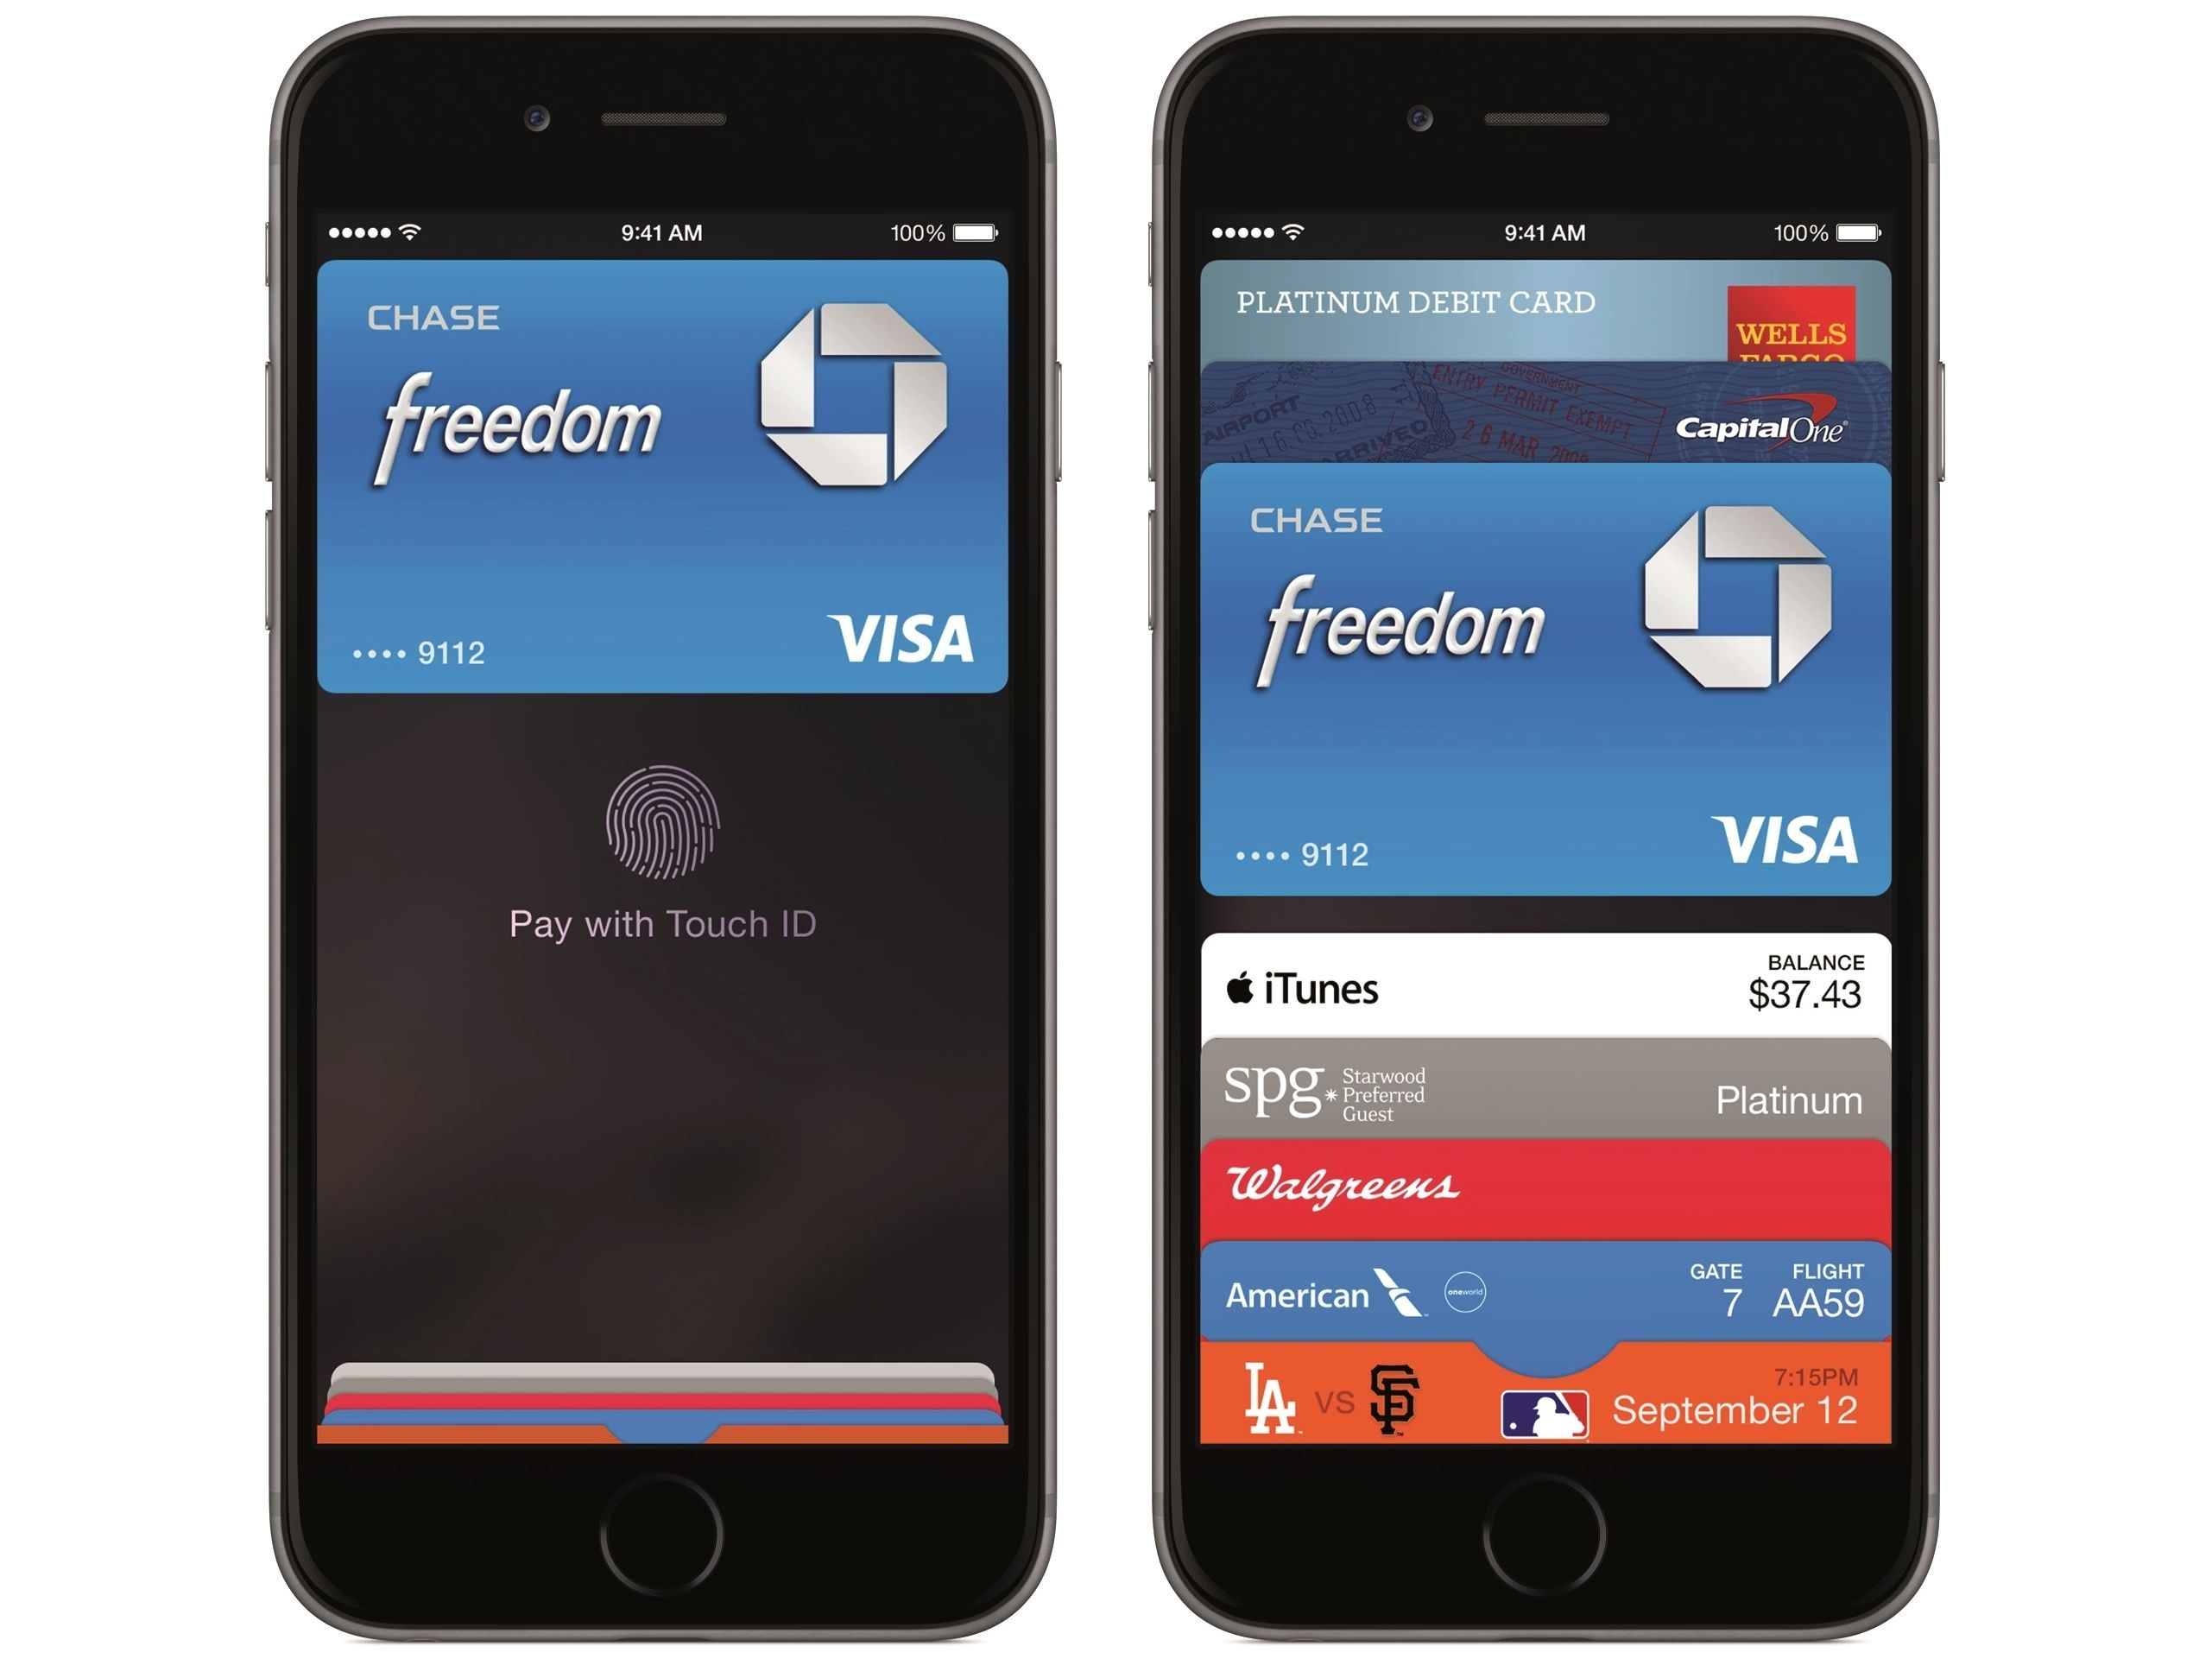 iphone 6 and iphone 6 plus Apple Apple pay, Mobile